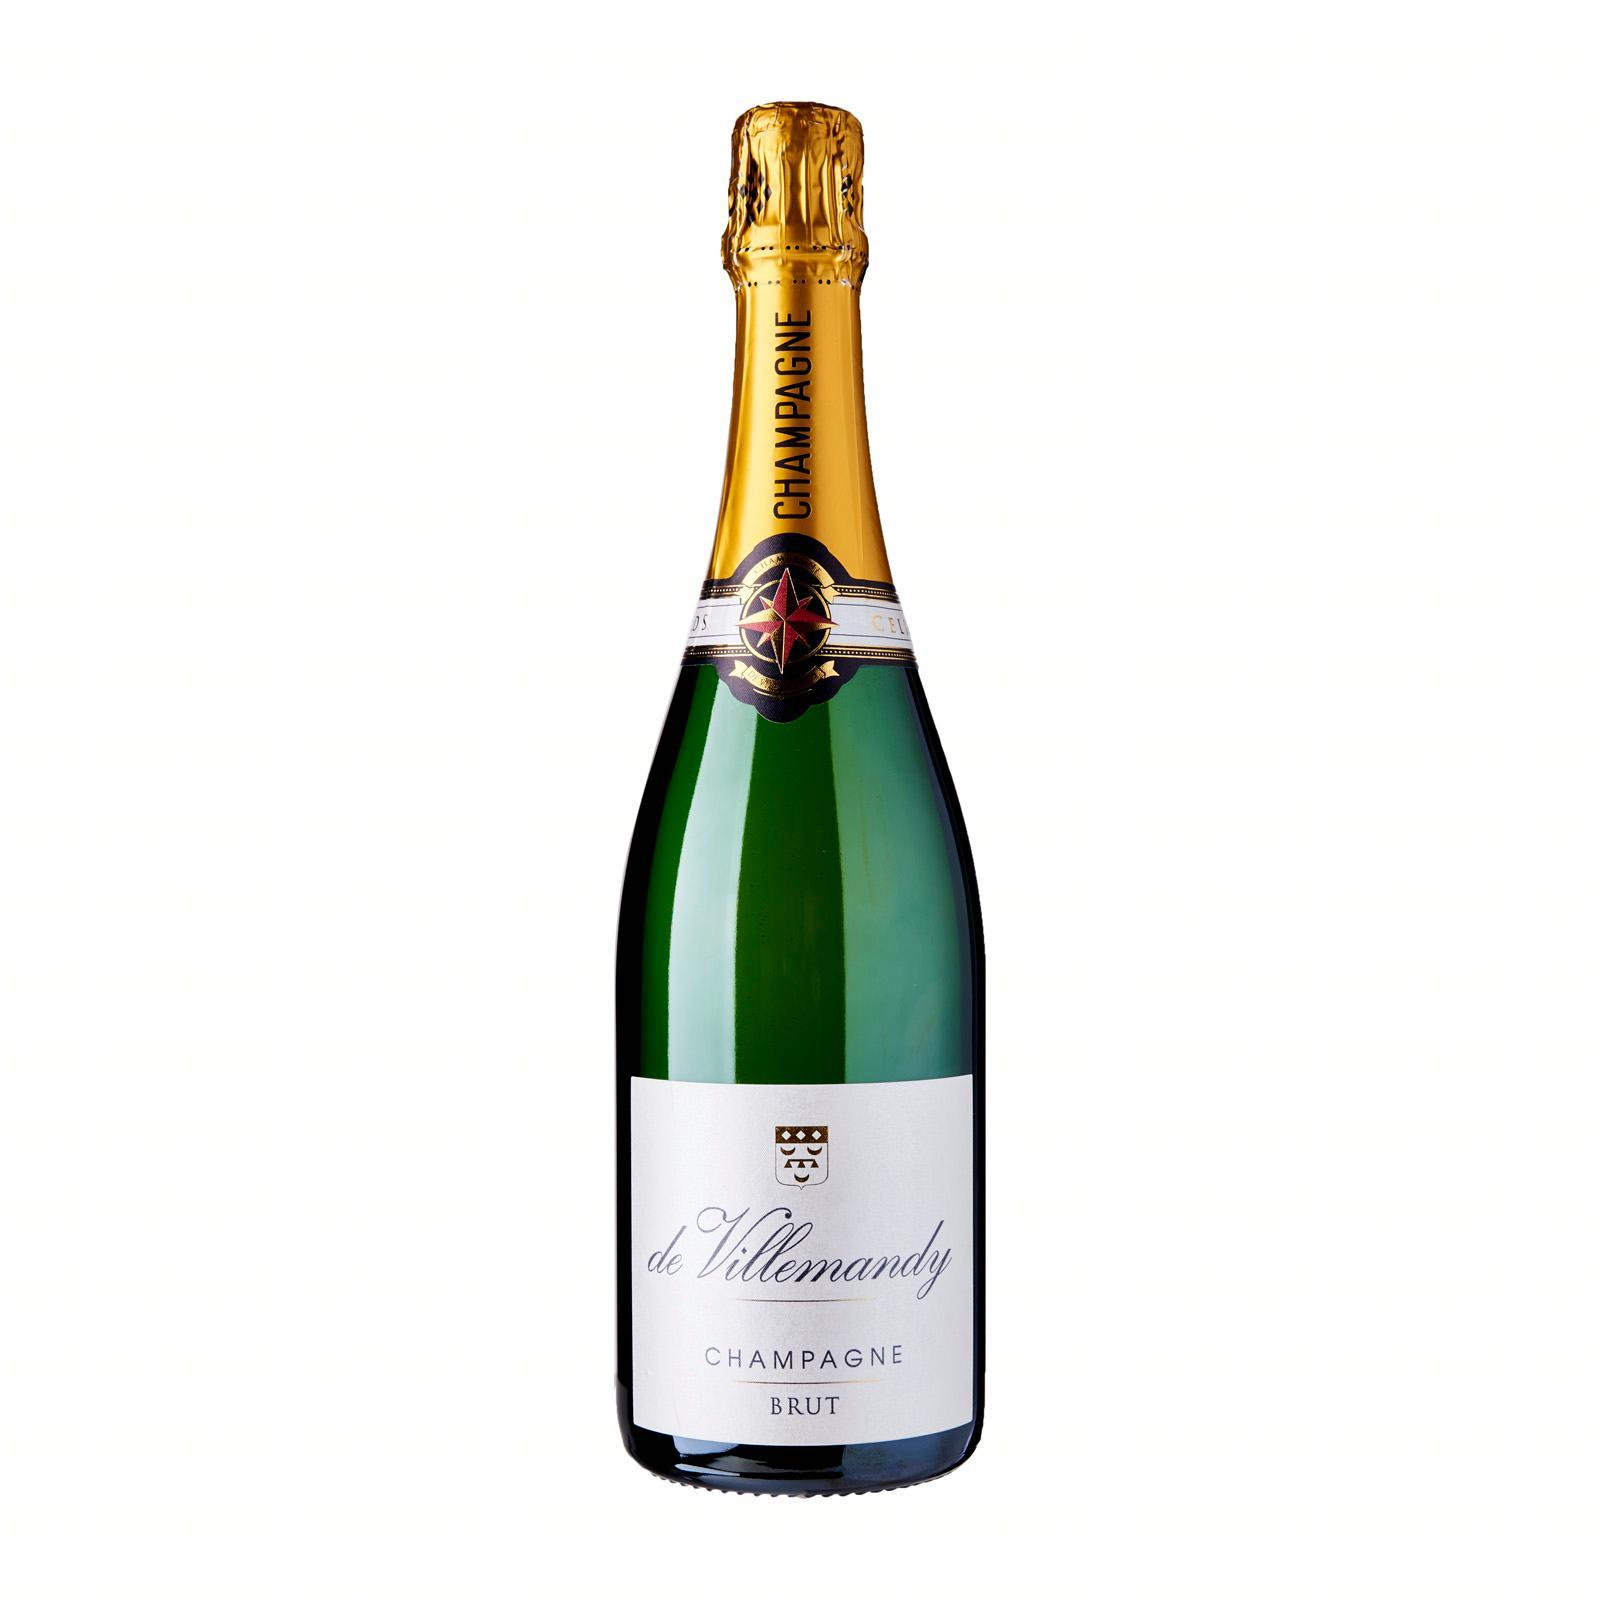 World's Cellar Champagne Brut